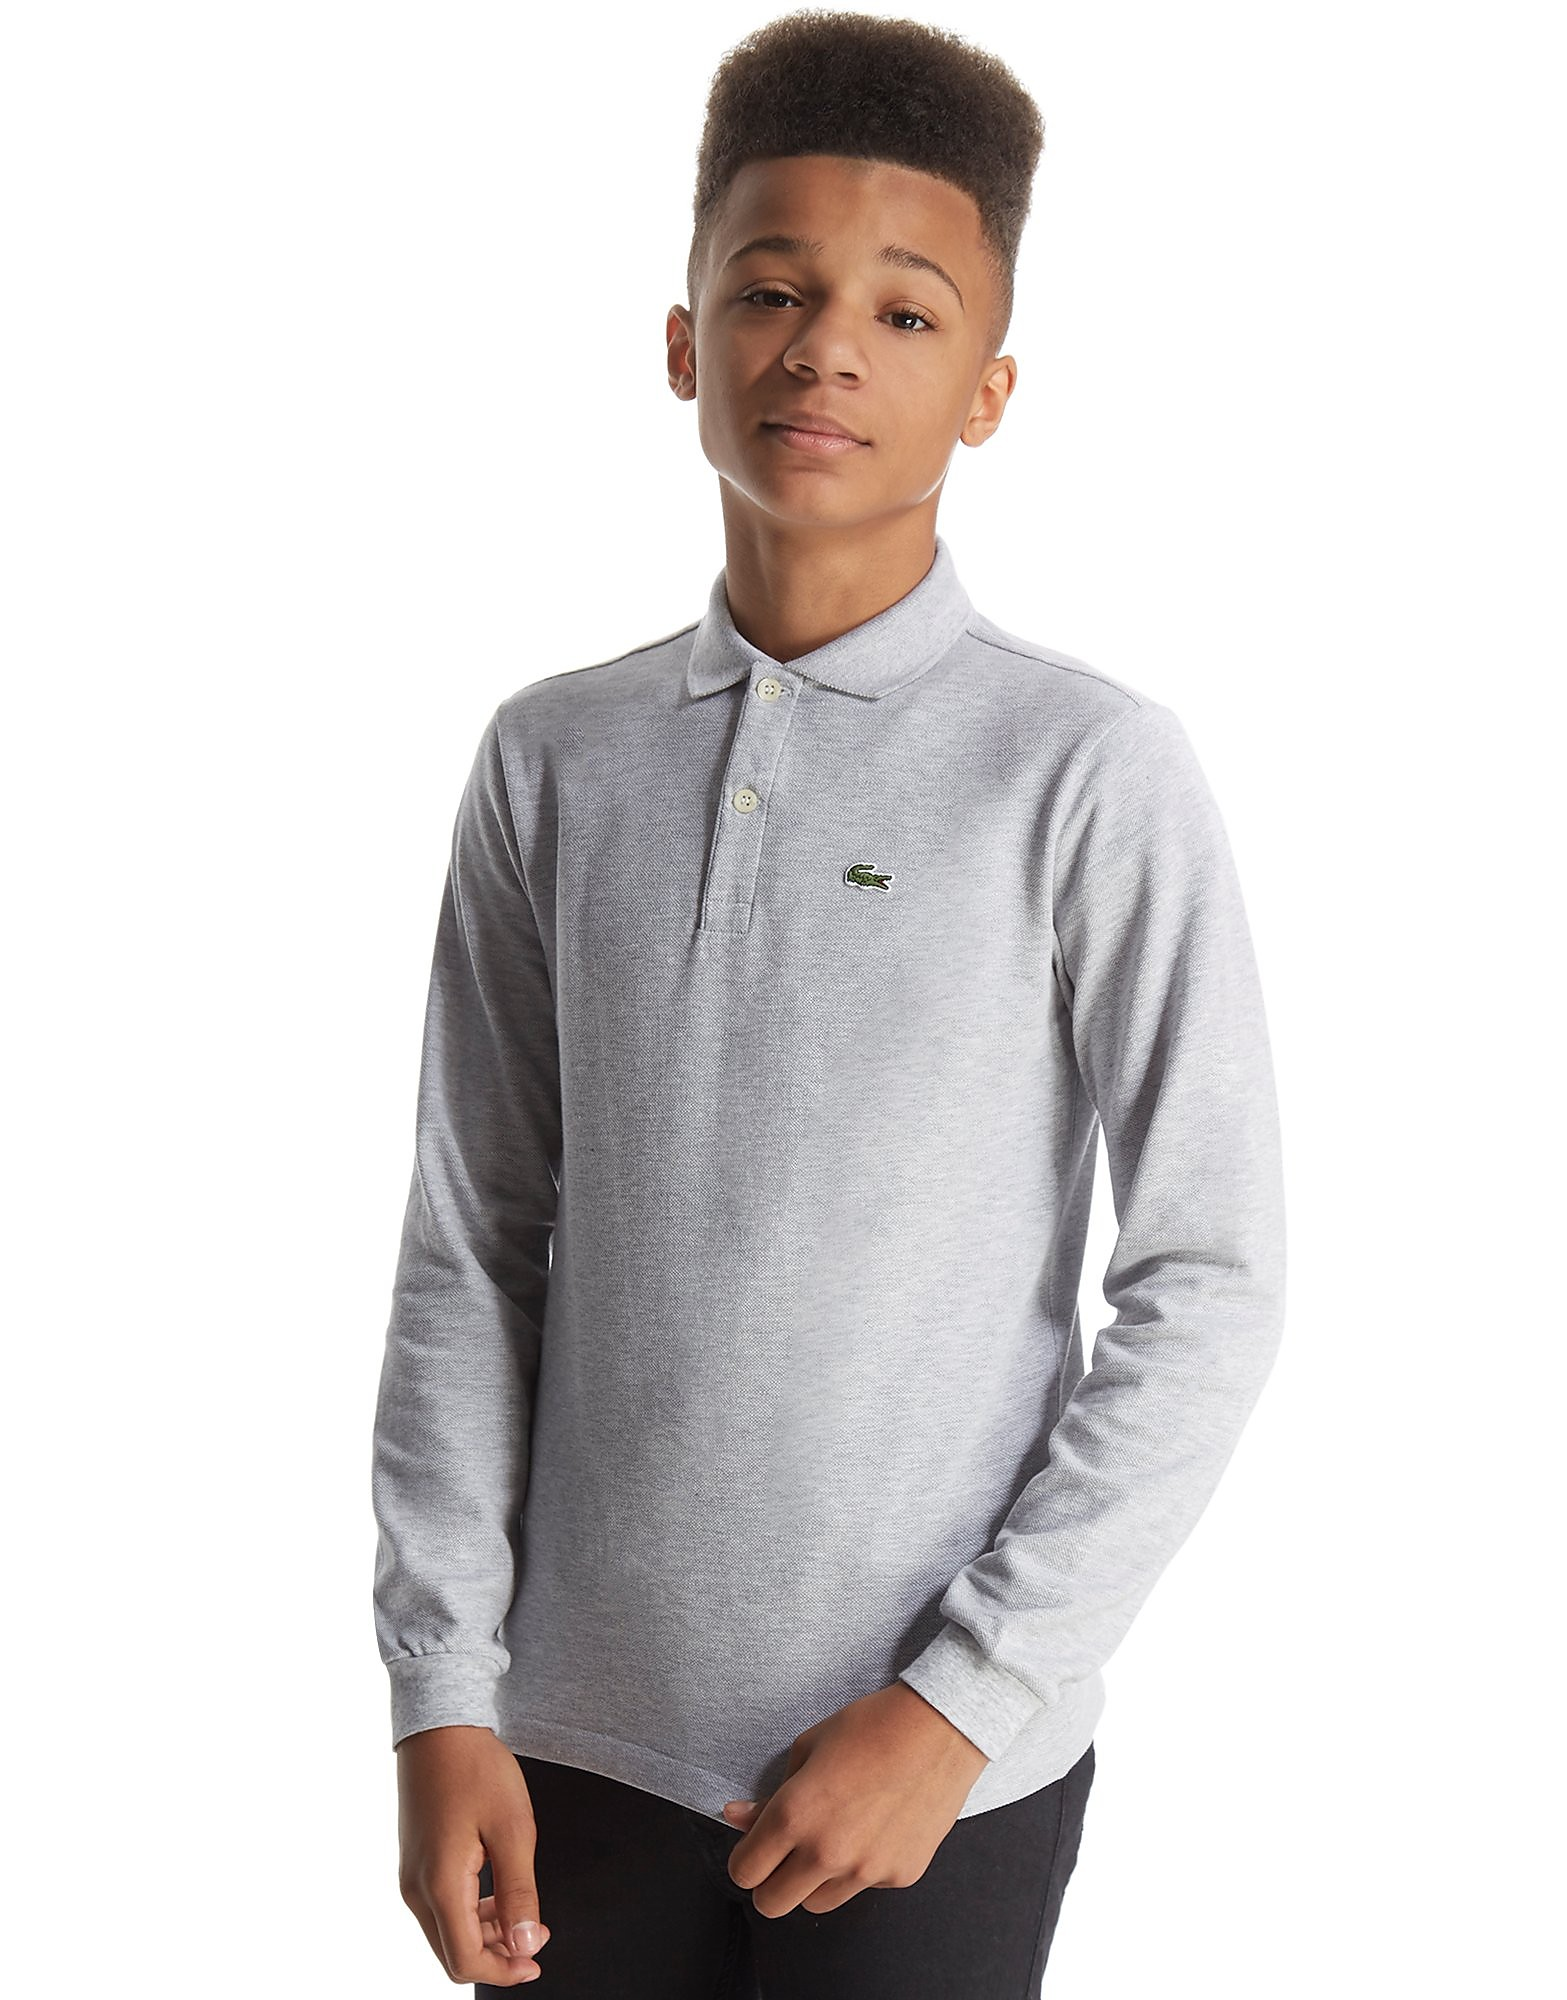 Lacoste Longsleeve Polo Shirt Junior